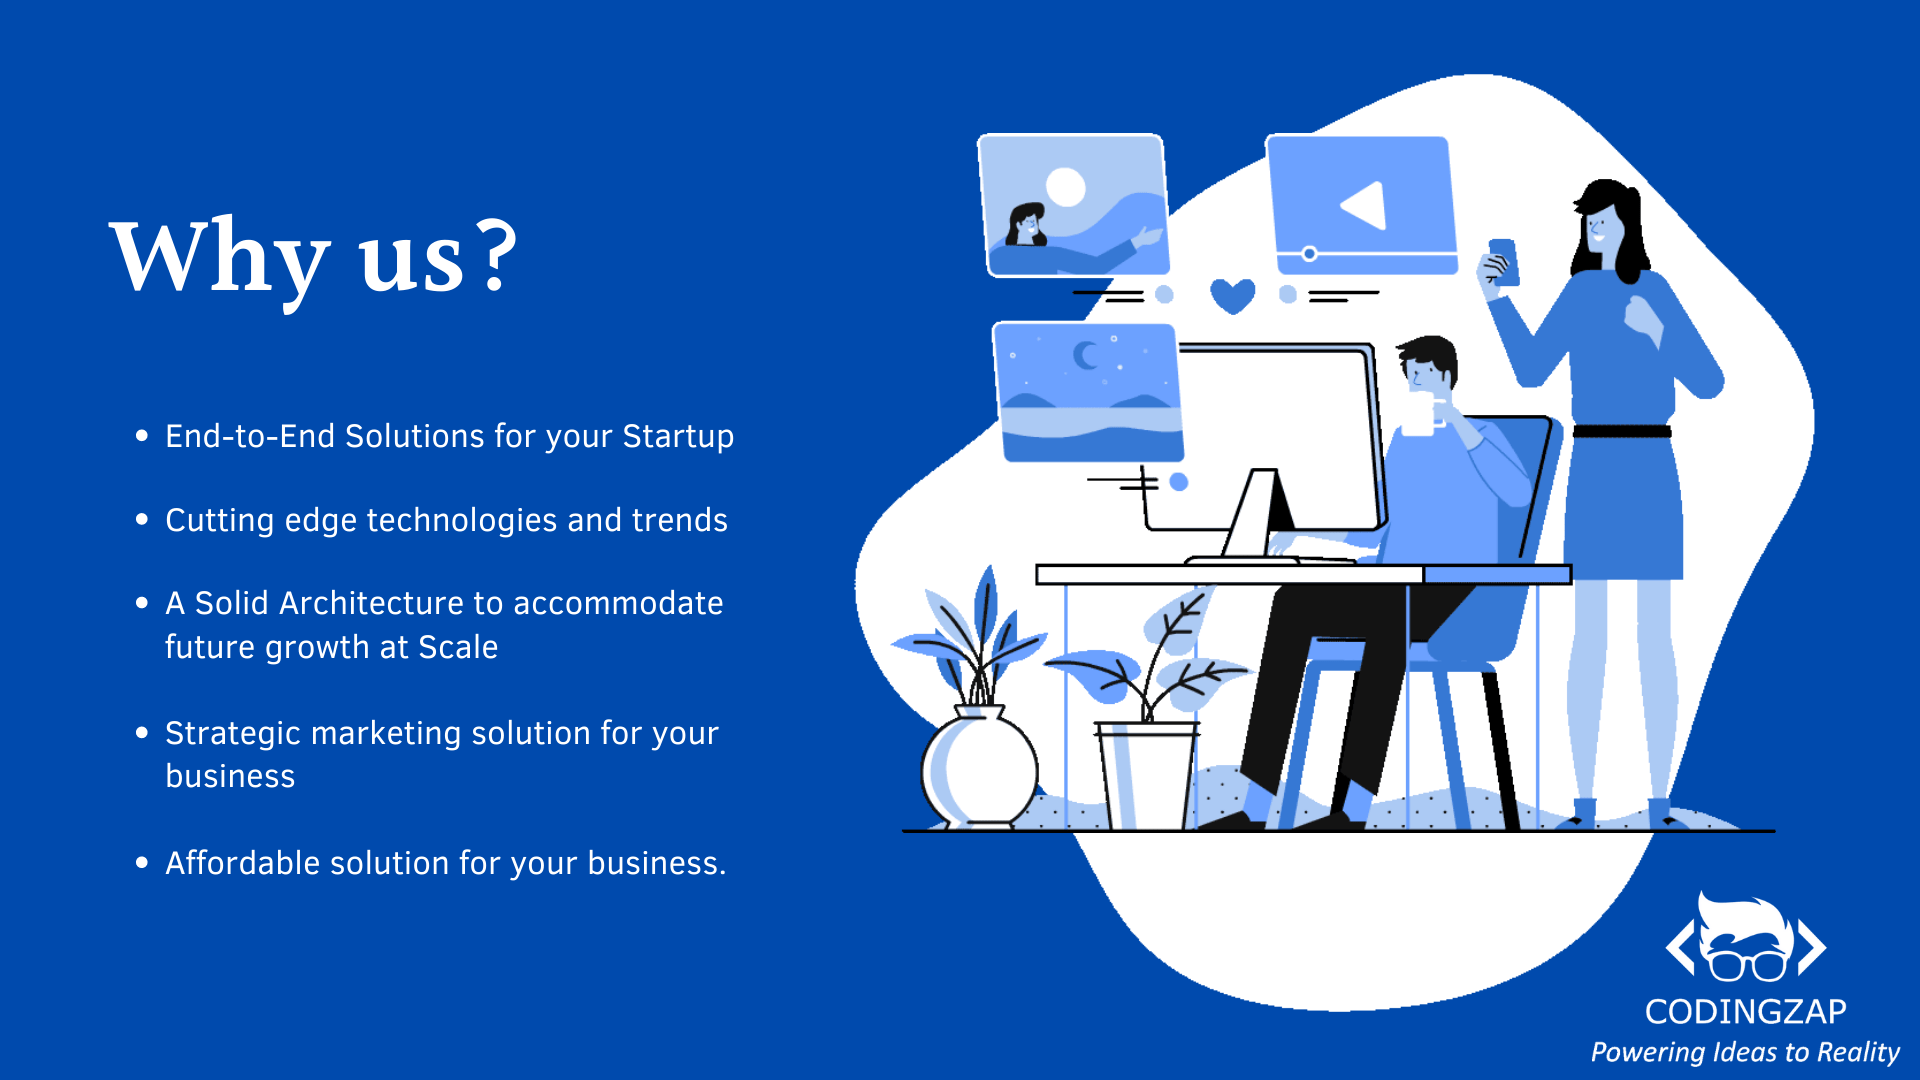 Why CodingZap for Startup bundle